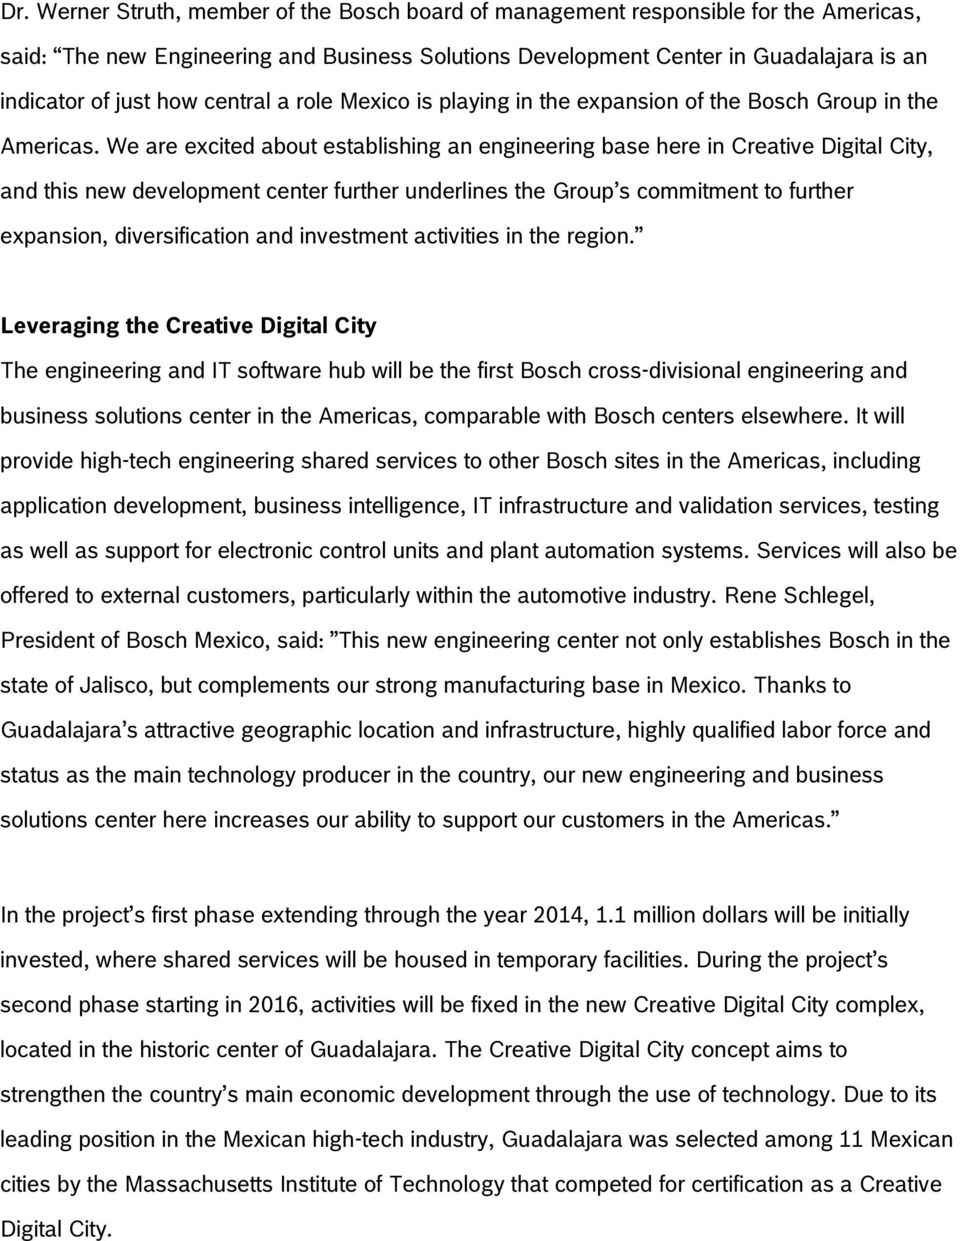 We are excited about establishing an engineering base here in Creative Digital City, and this new development center further underlines the Group s commitment to further expansion, diversification